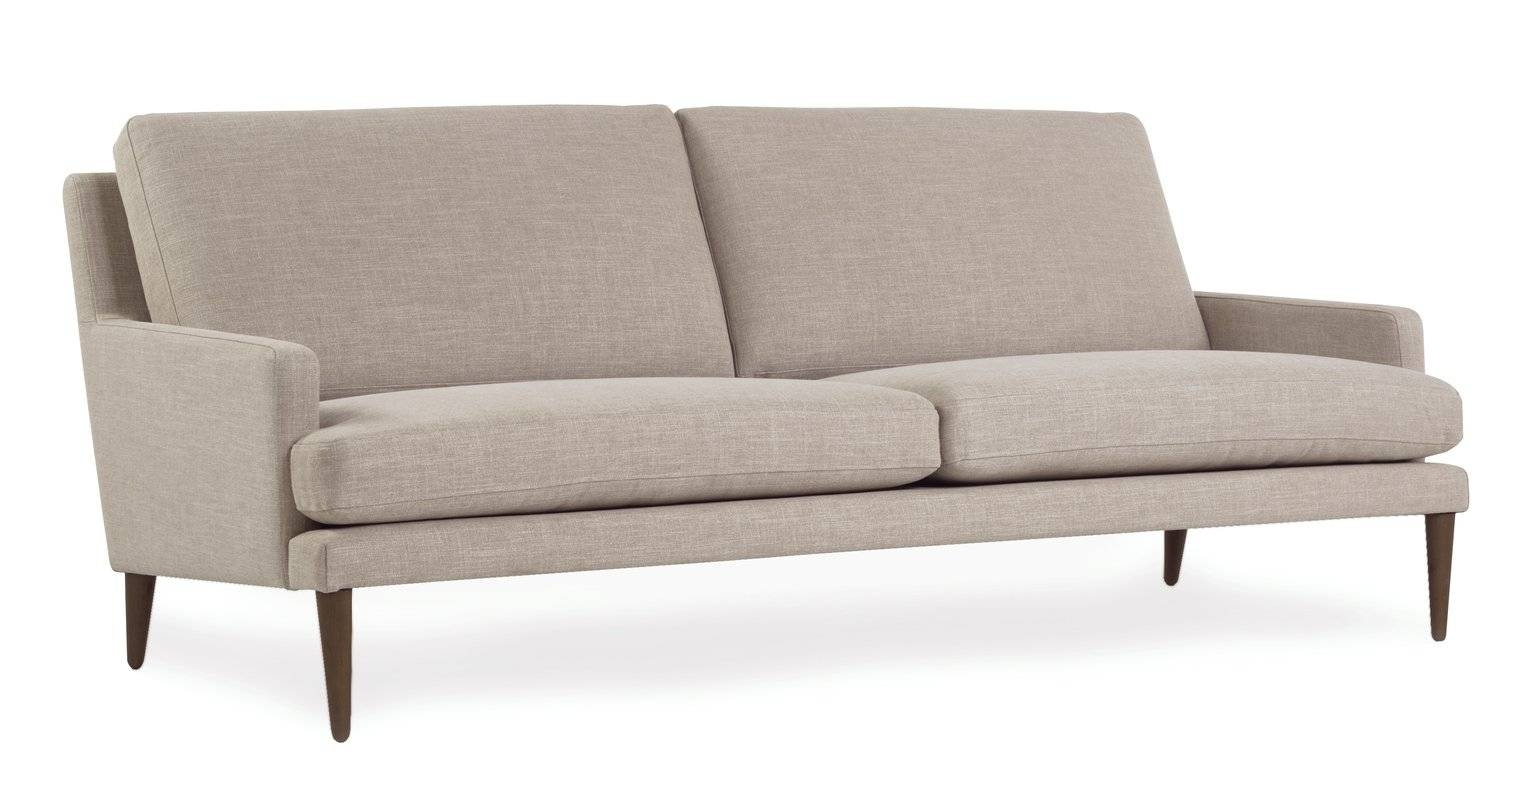 Iqrup And Ritz Brooklyn Mid-Century Modern 3 Seater Sofa | Wayfair throughout Modern 3 Seater Sofas (Image 16 of 30)